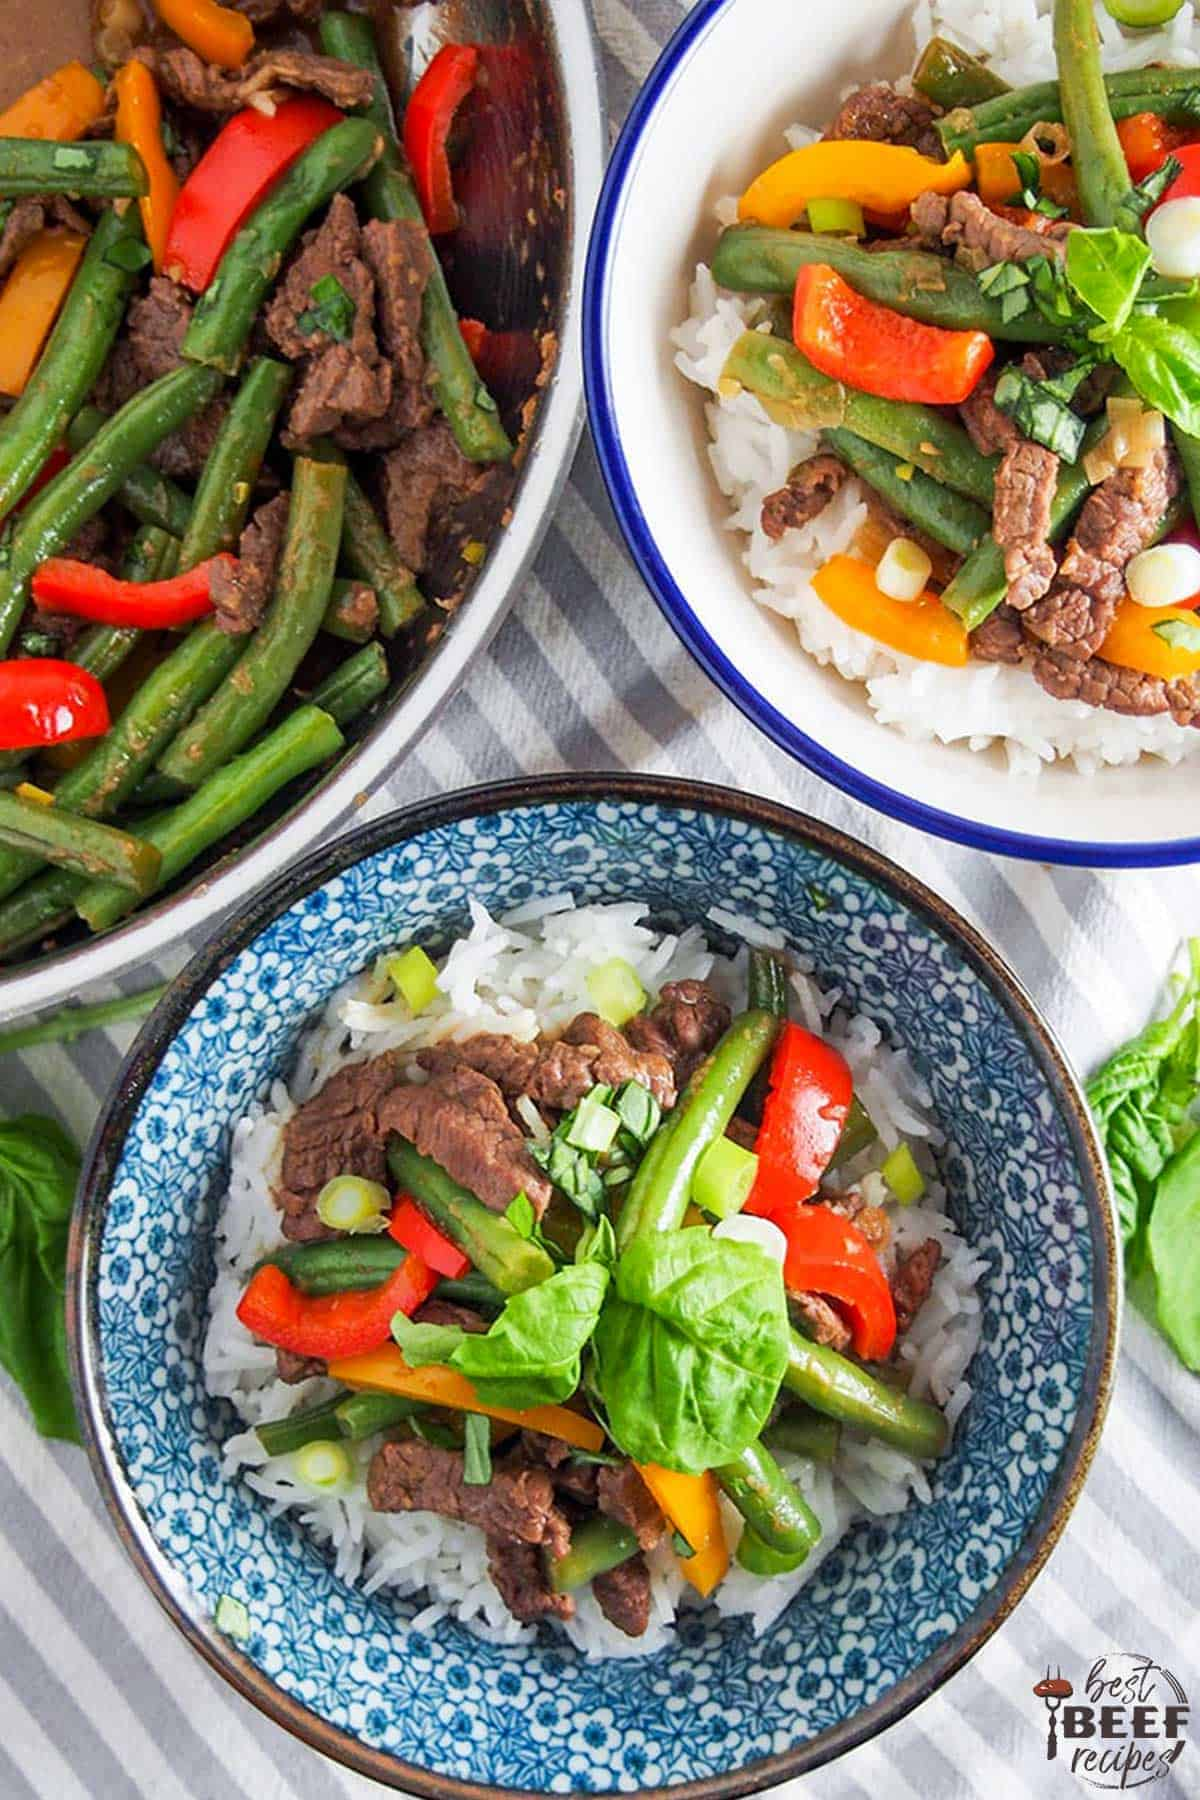 Two bowls of Asian beef stir fry with a pot of stir fry leftover